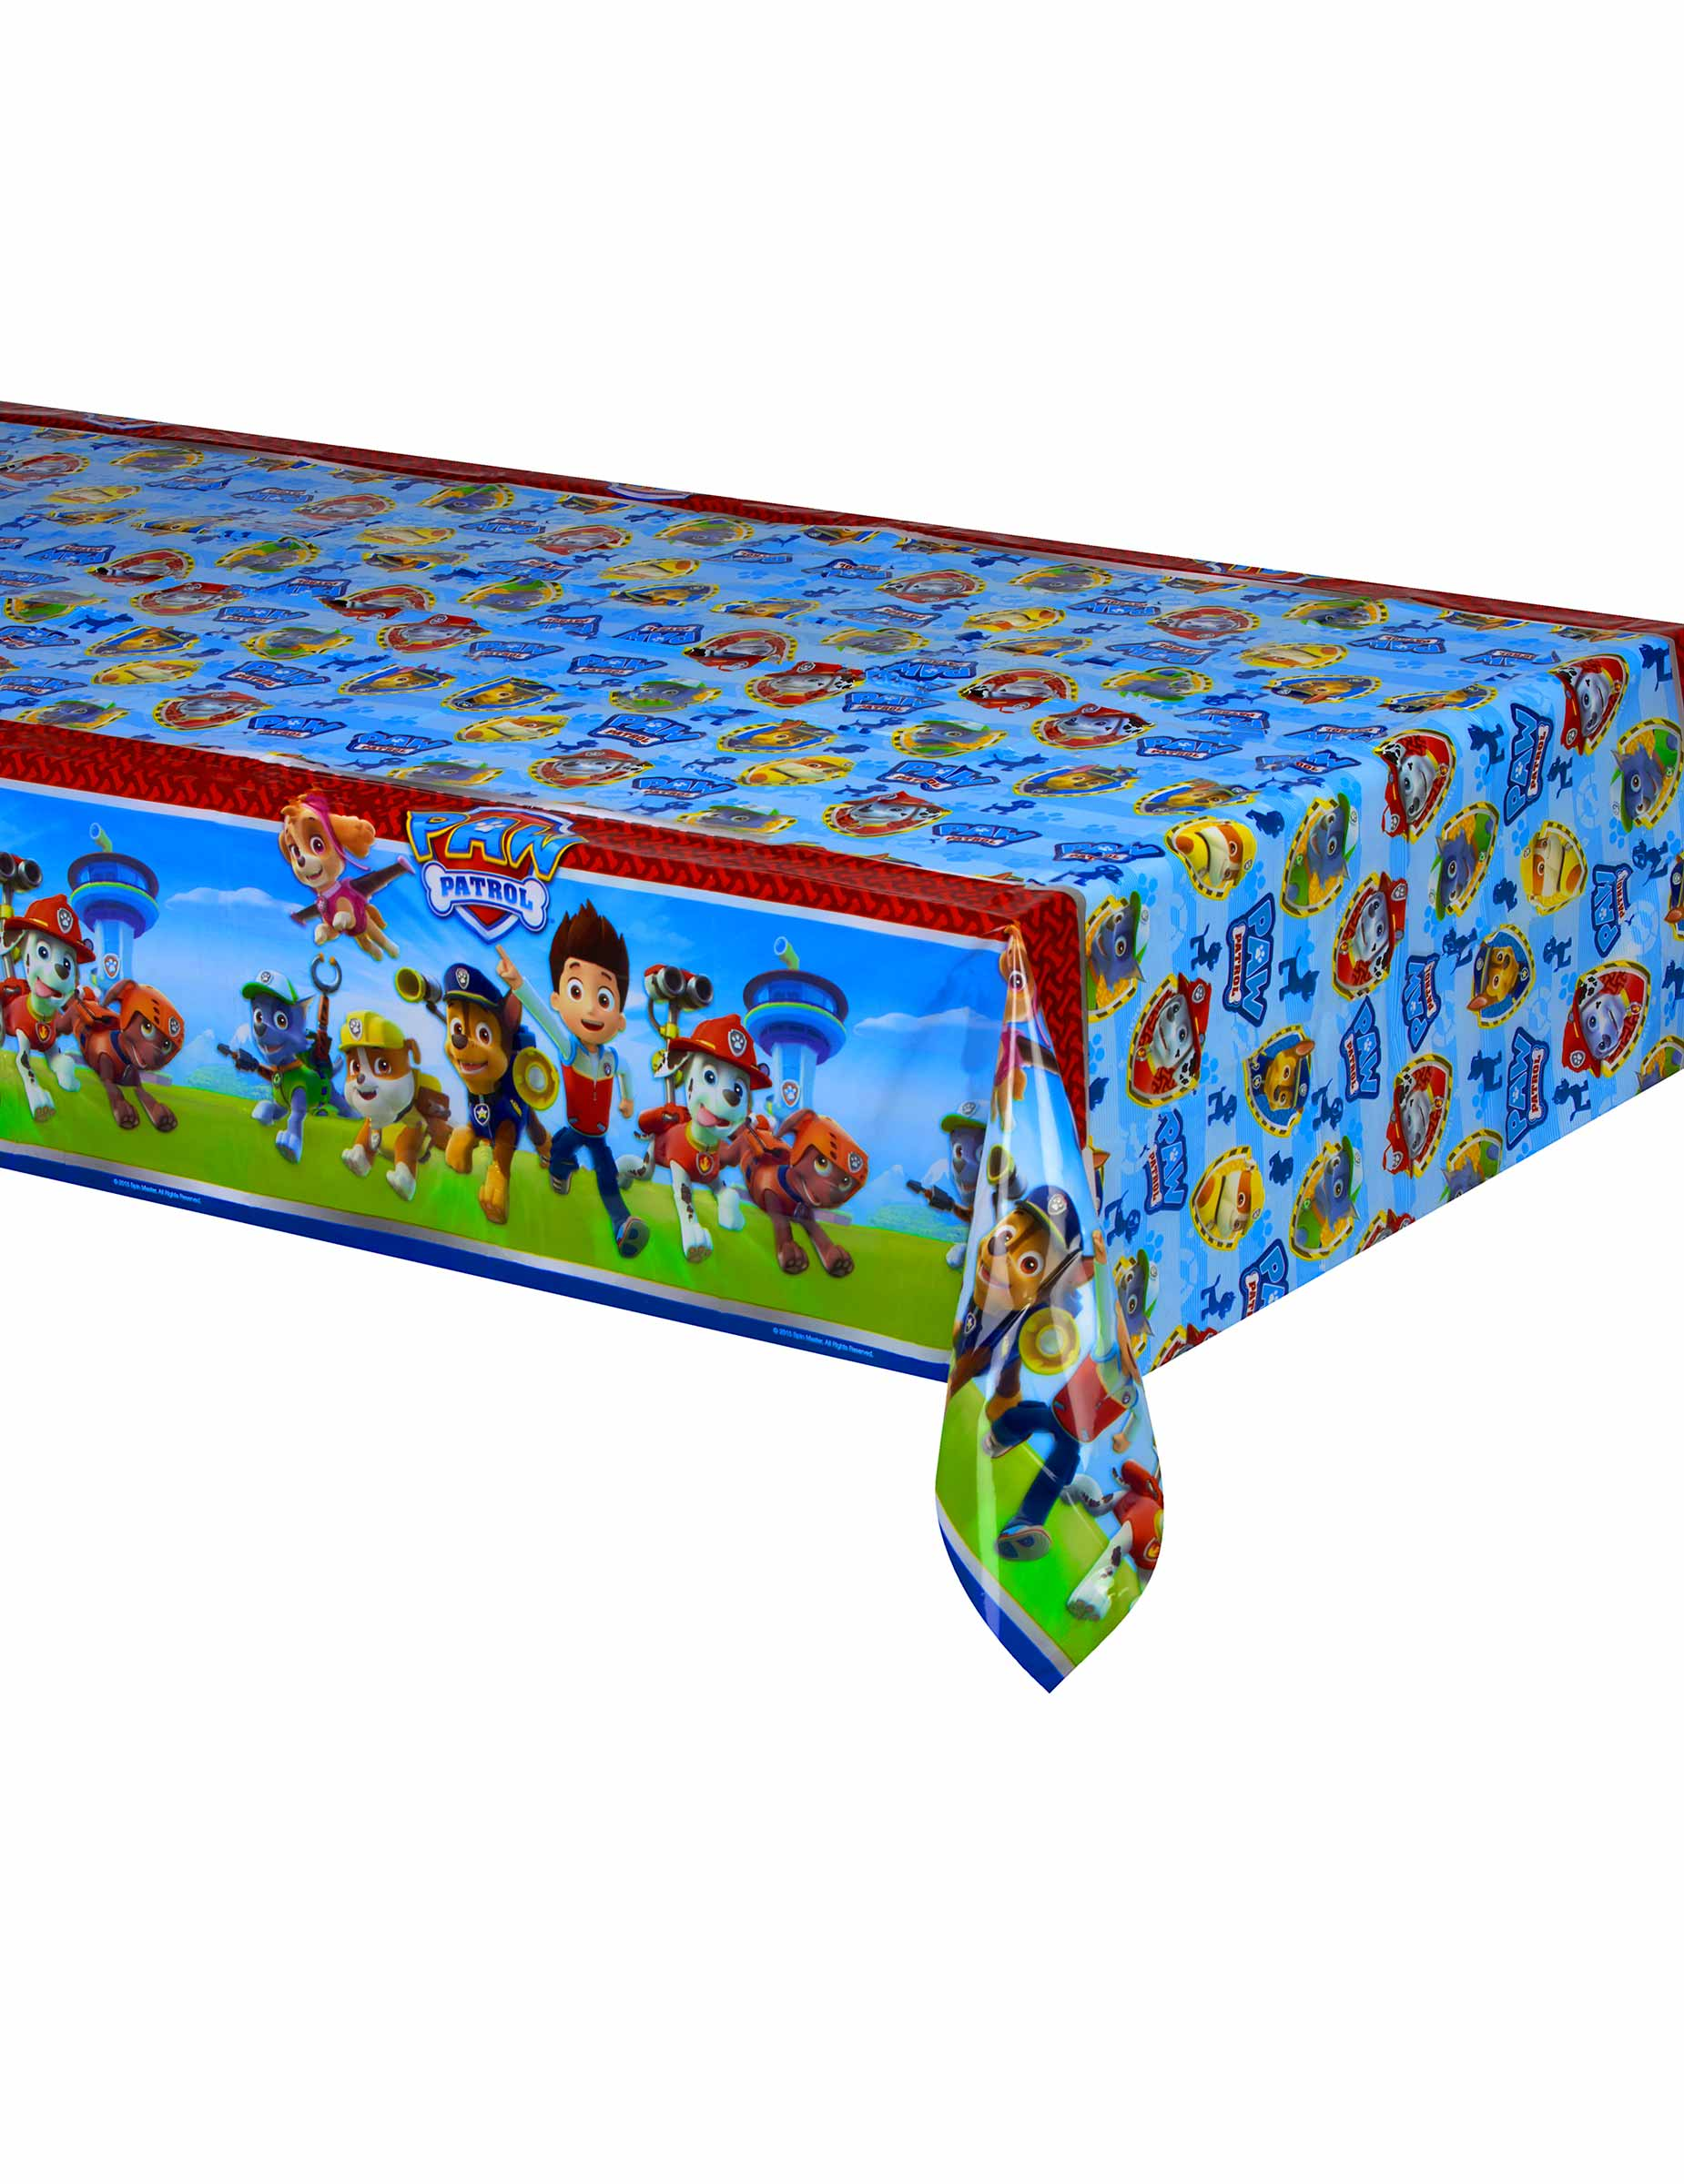 kunststoff tischdecke paw patrol 120 x 180 cm partydeko und g nstige faschingskost me vegaoo. Black Bedroom Furniture Sets. Home Design Ideas